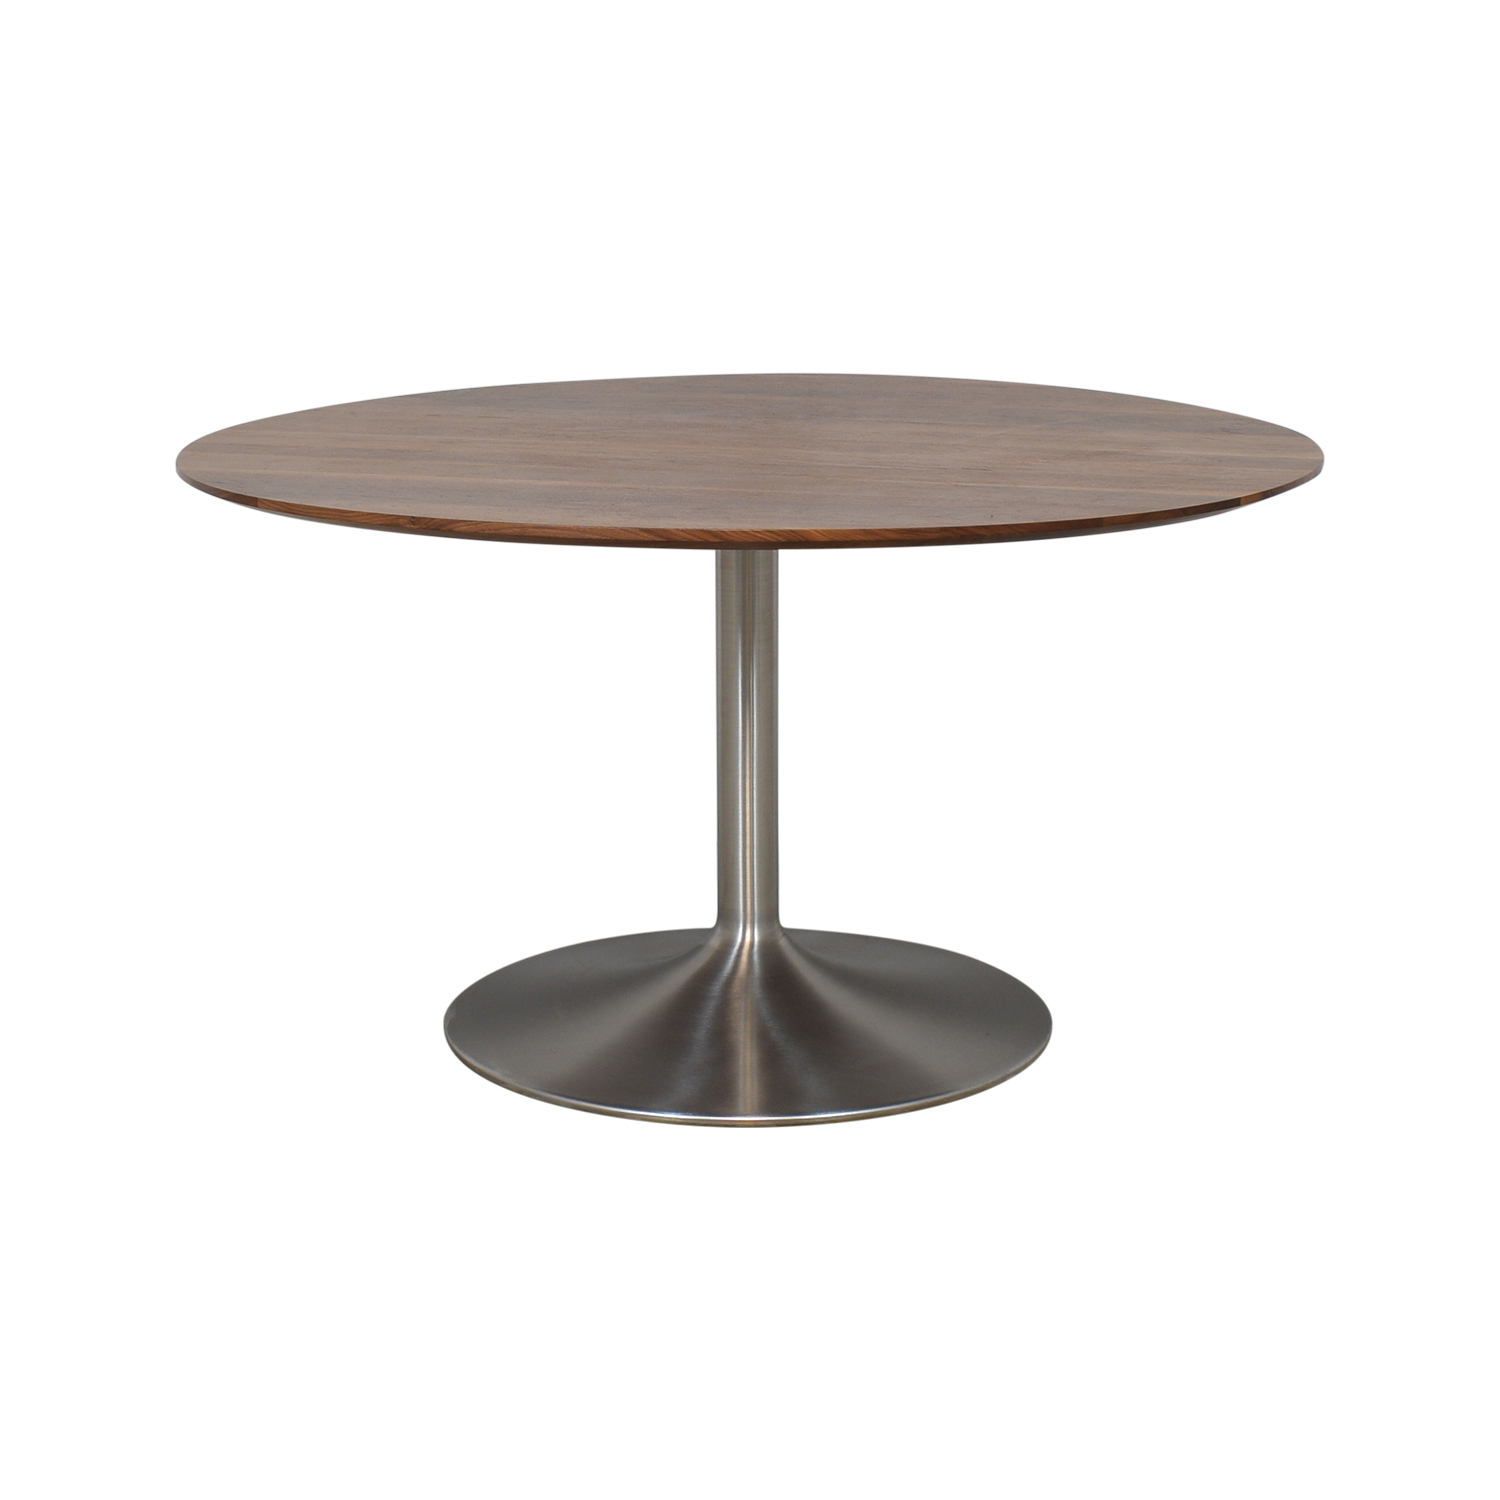 47 Off Inmod Inmod Saarinen Oval Pedestal Dining Table